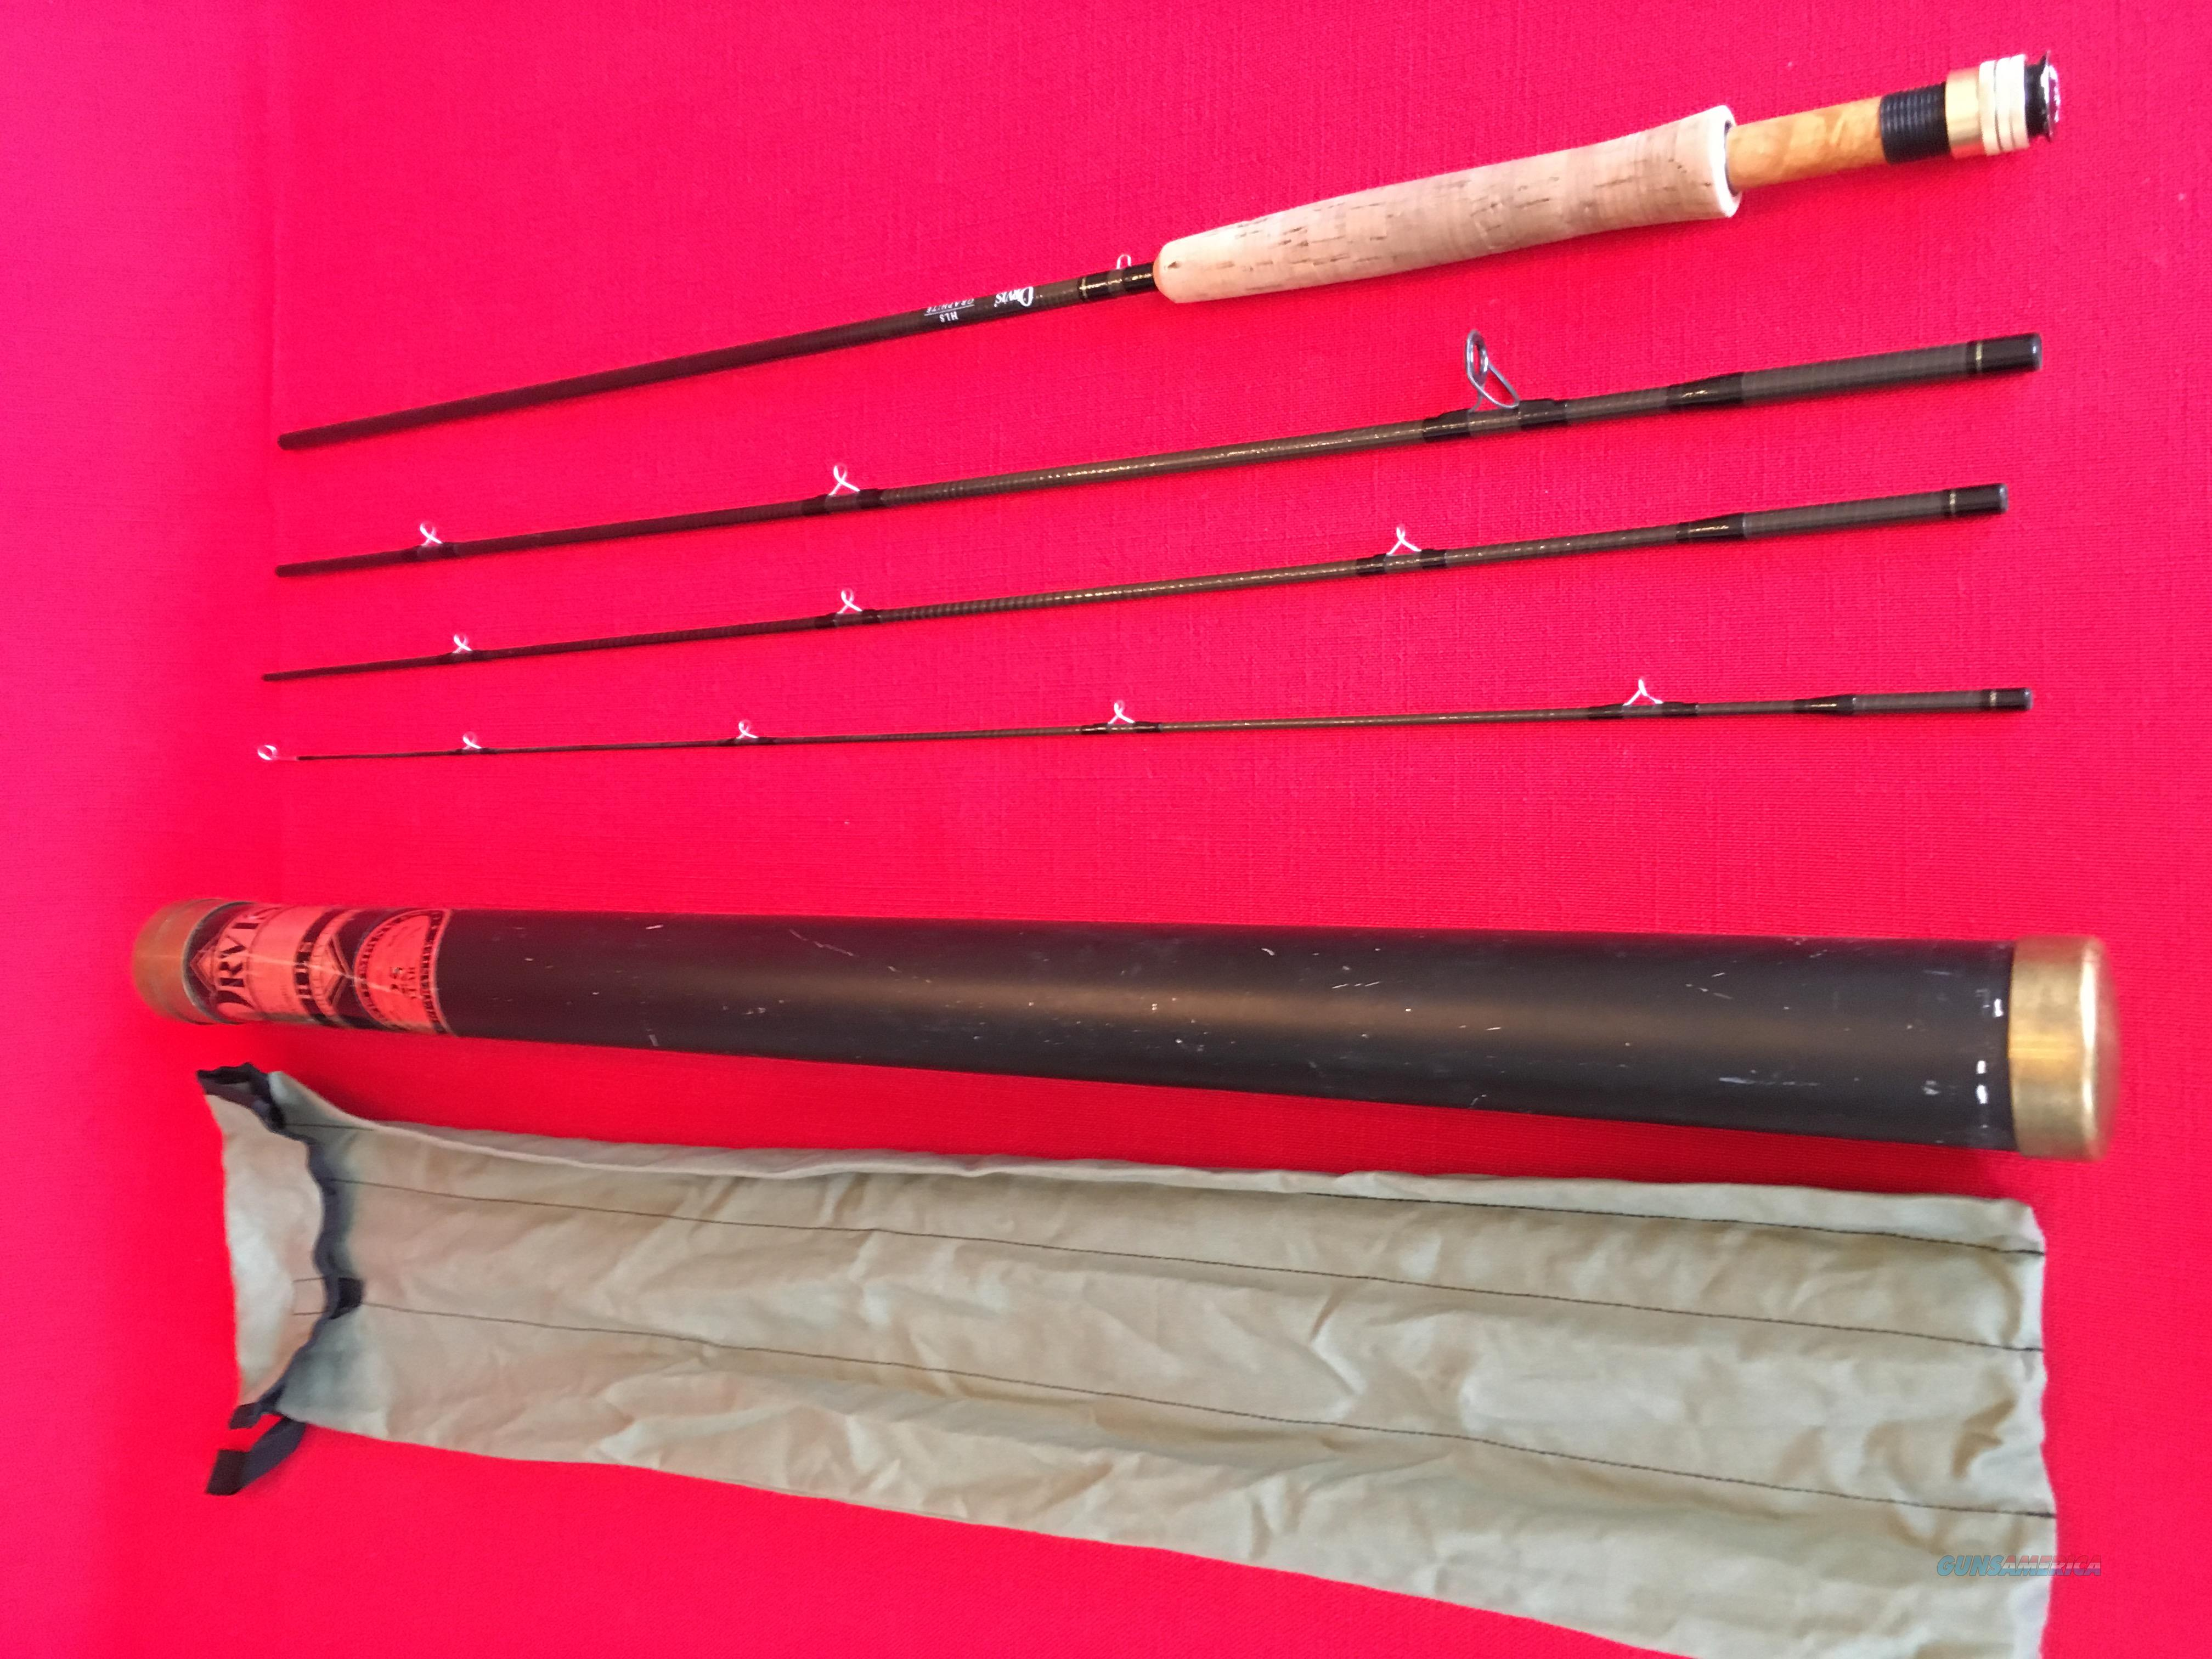 Orvis HLS (High Line Speed), 4 piece, 9' Graphite Fly Rod - #6 Line   Non-Guns > Fishing/Spearfishing